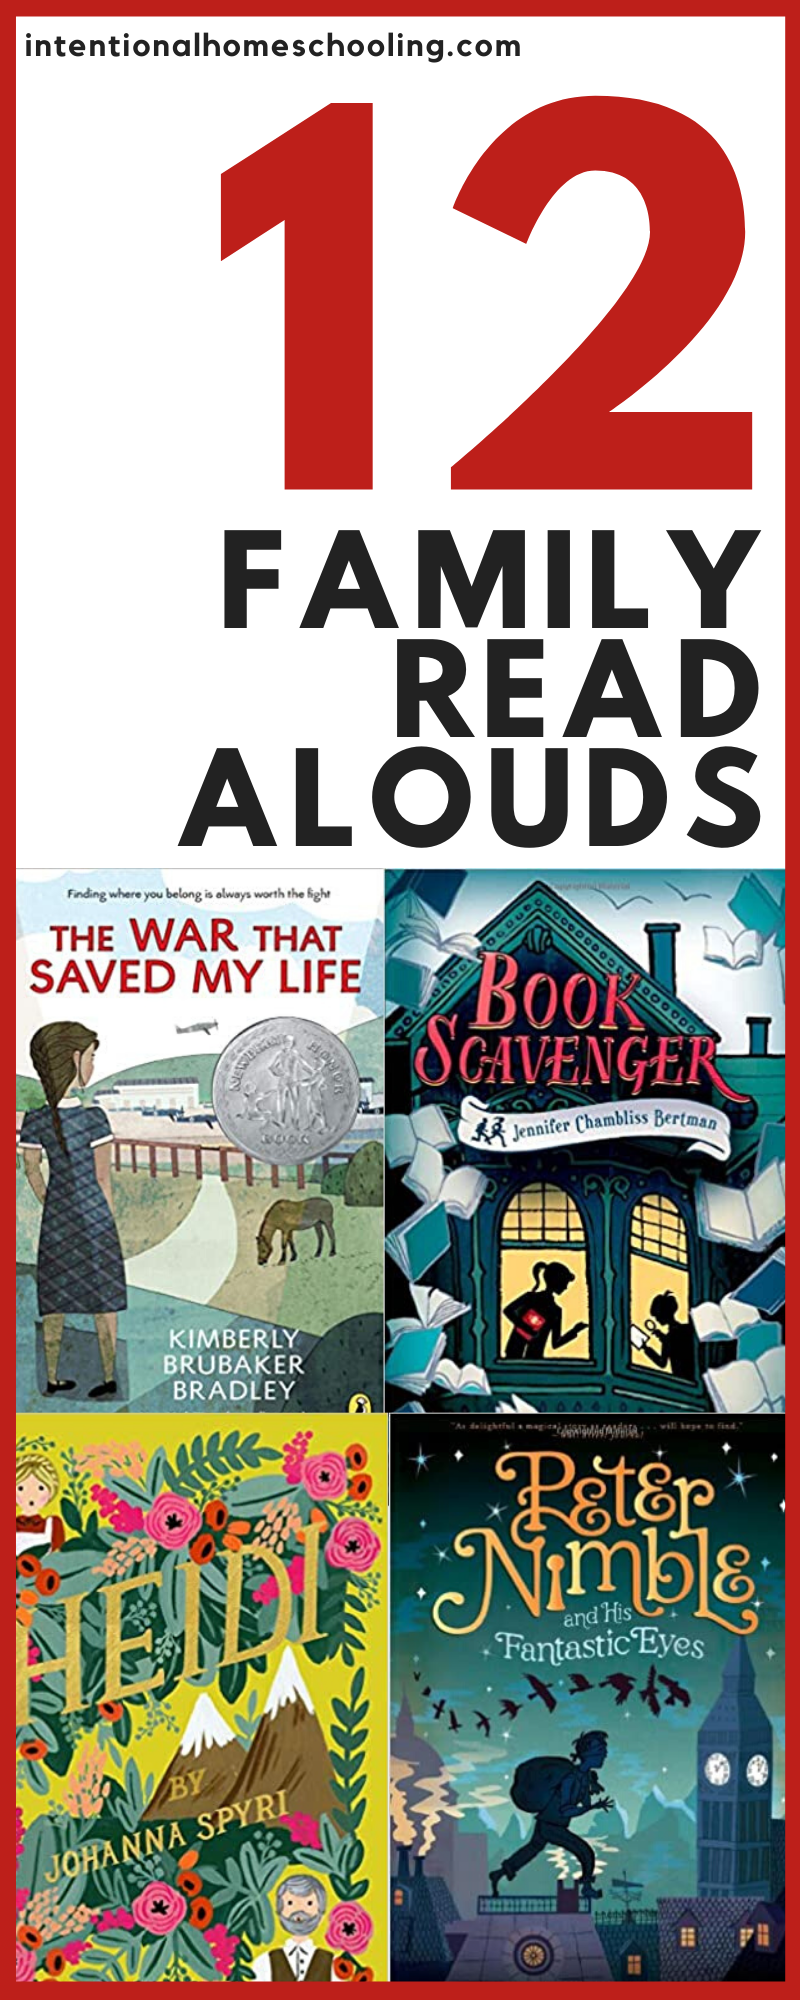 Family Read Aloud Books we want to read together as a family this year